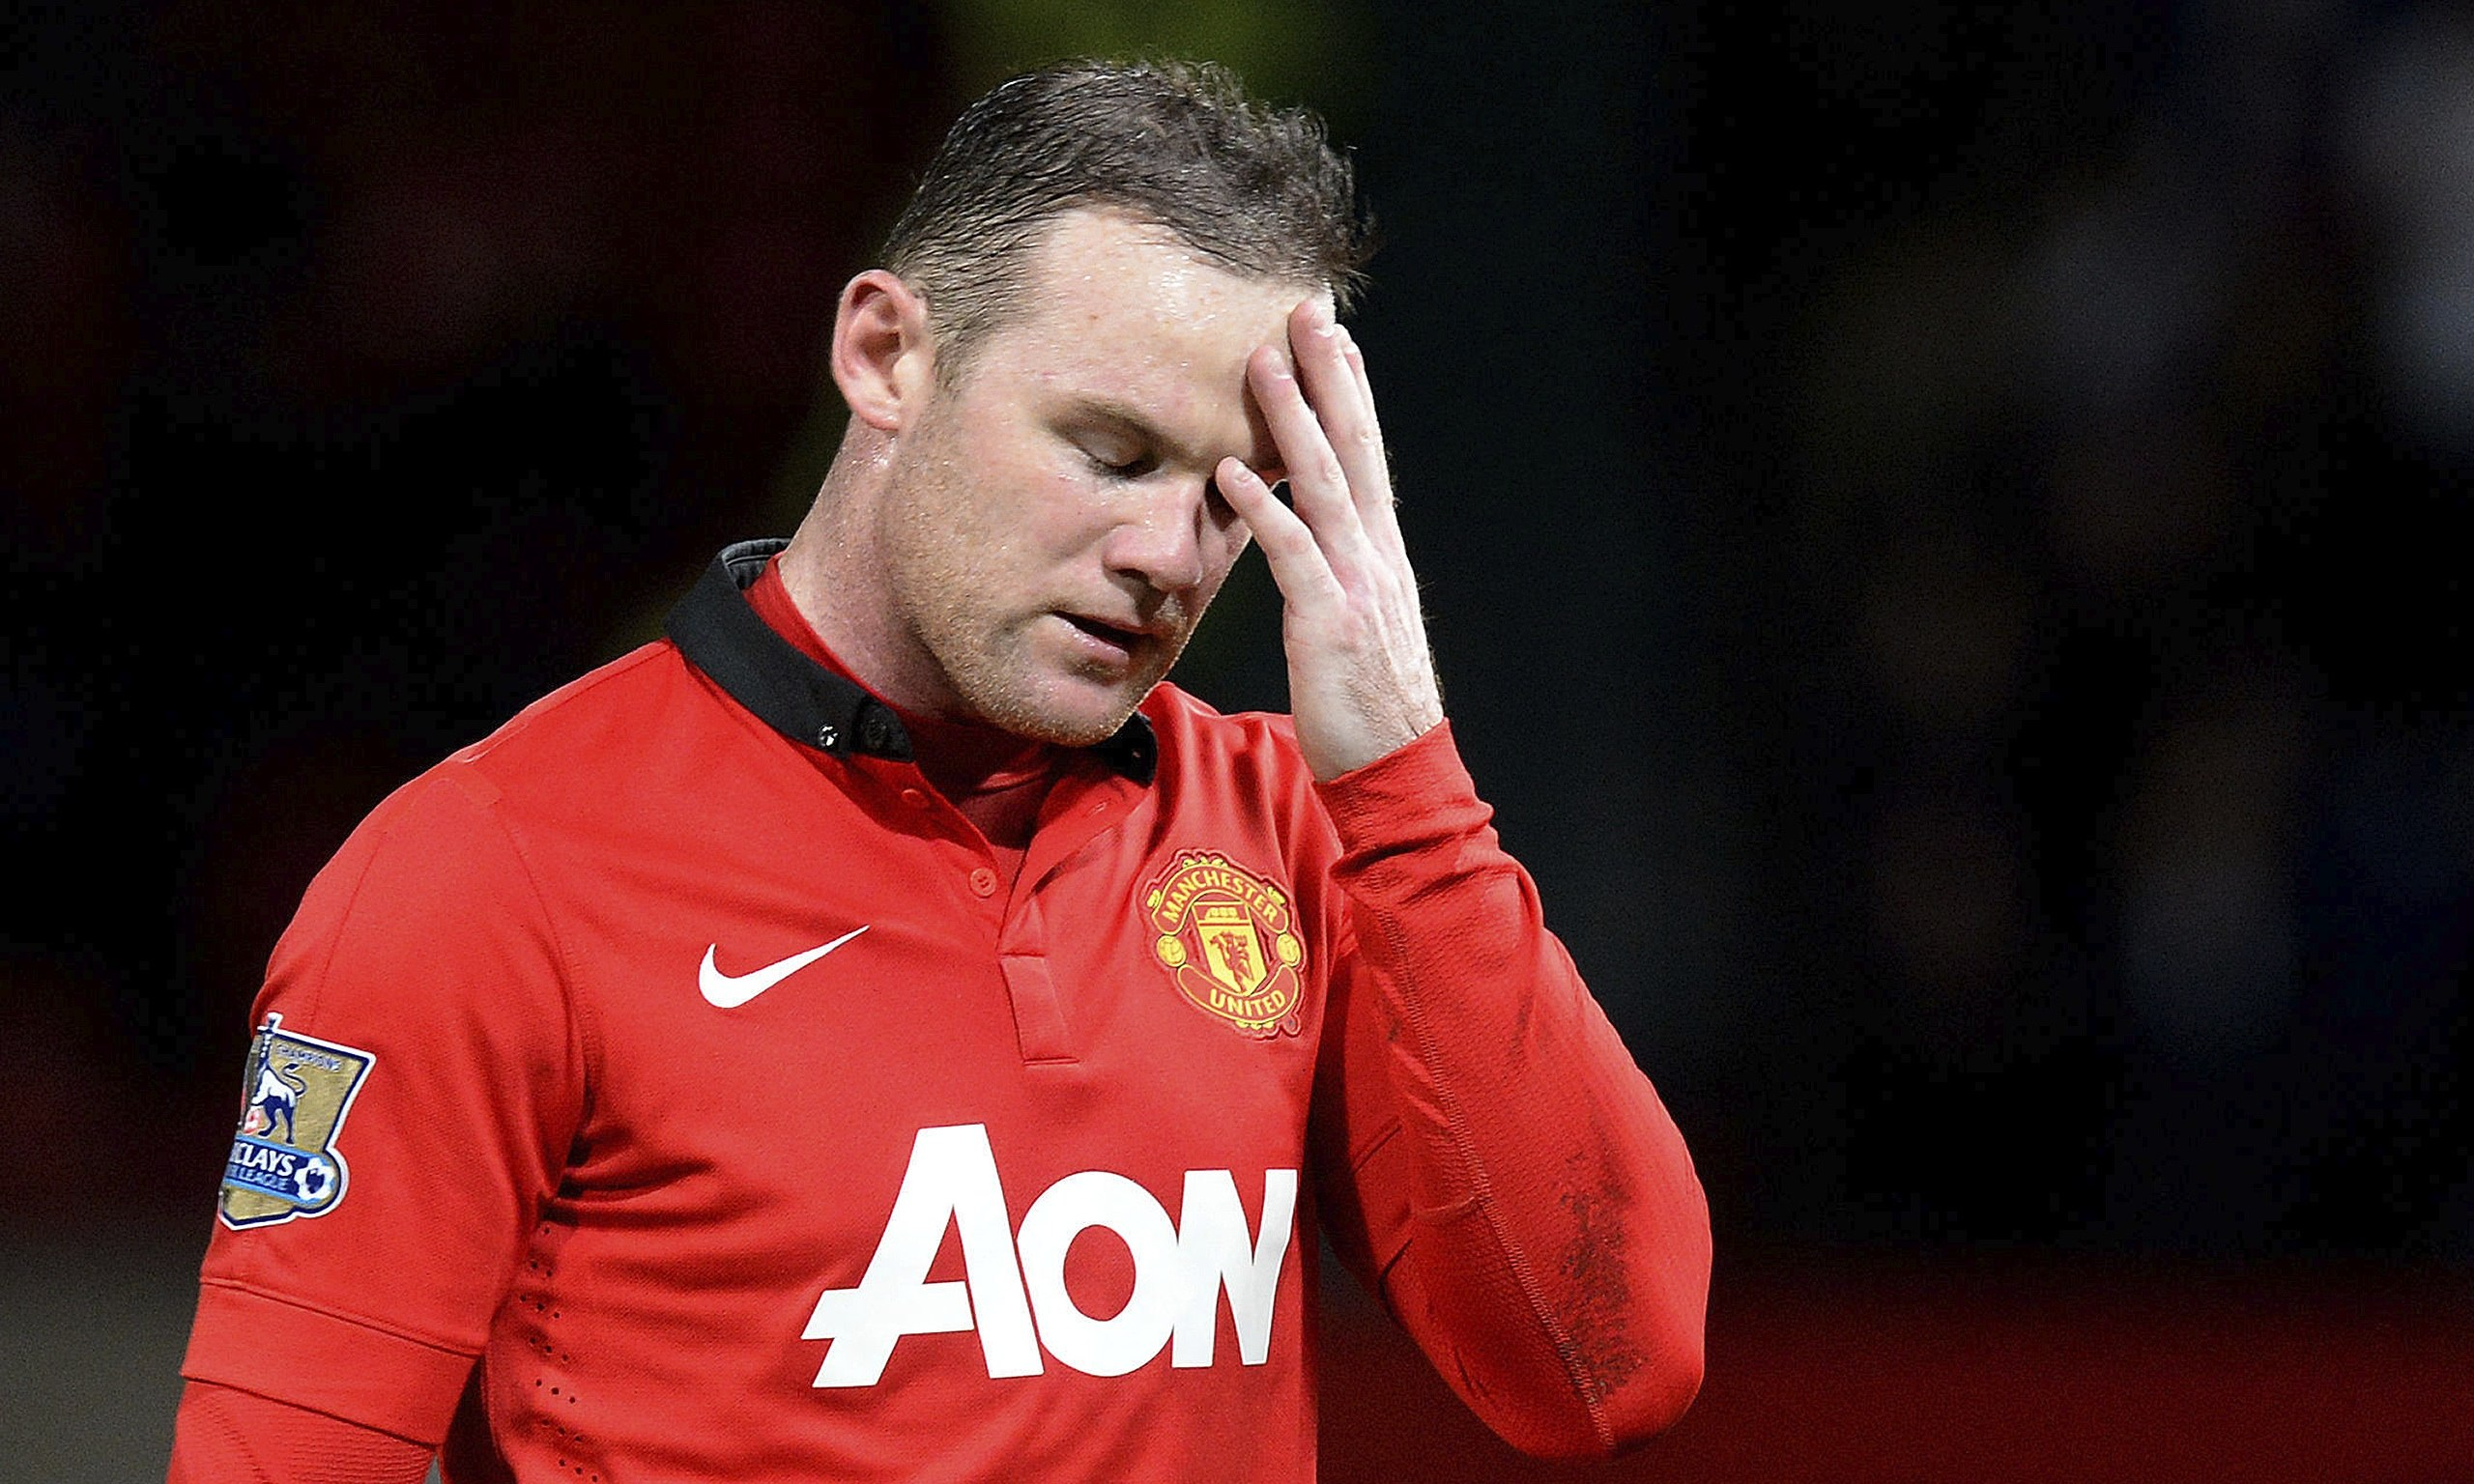 Wayne Rooney 2014 Wayne Rooney injury fears grow as Manchester United prepare for